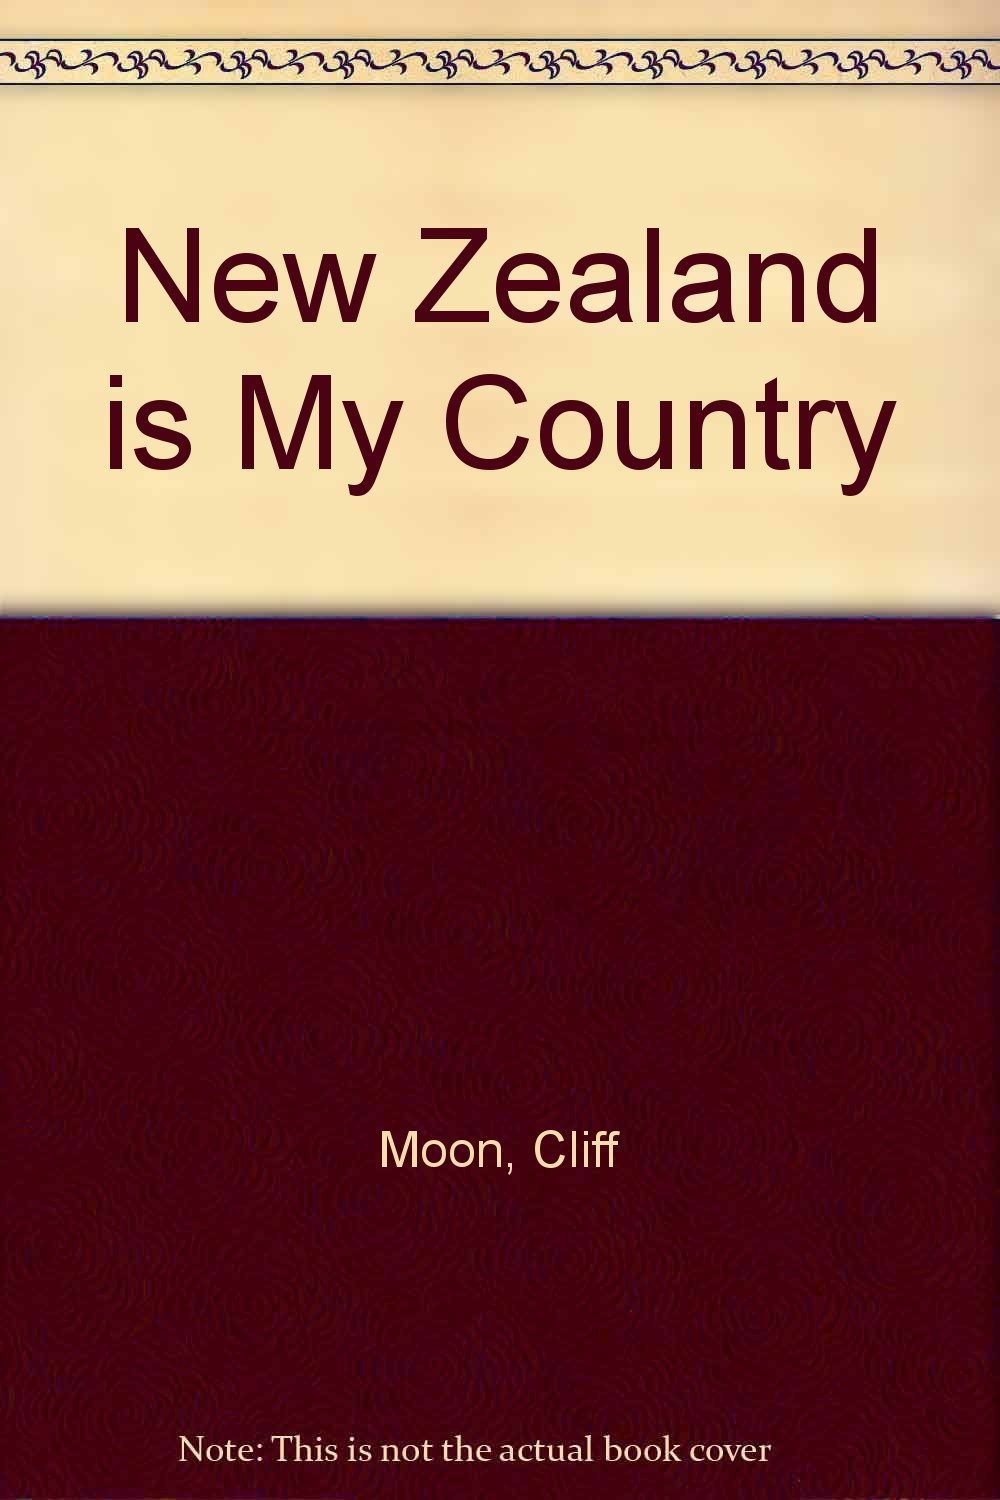 New Zealand Is My Country